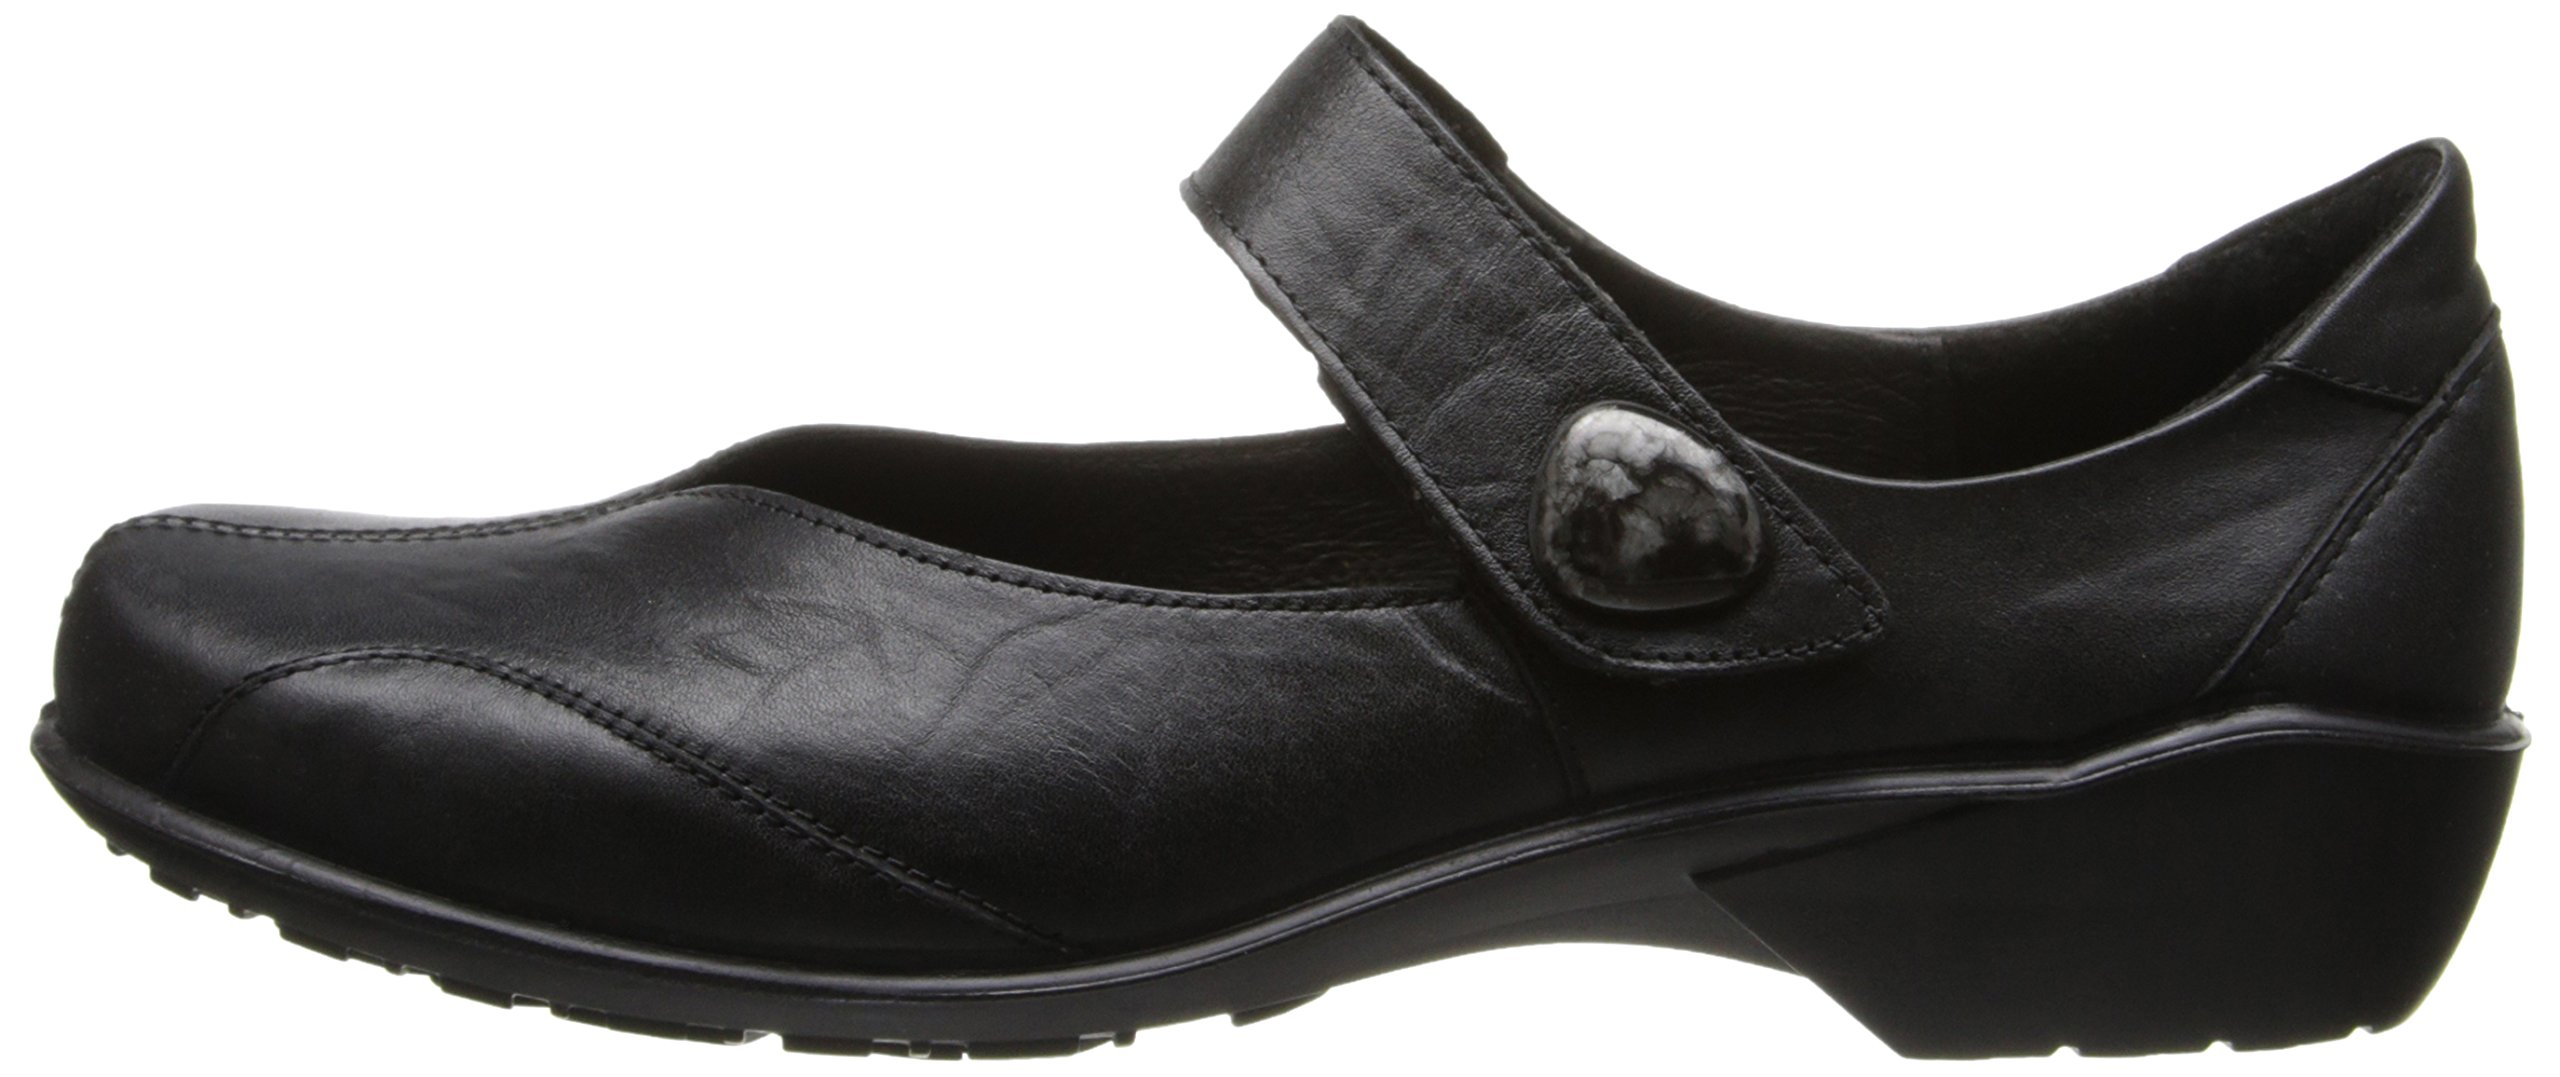 Romika Women's Citylight 87 Mary Jane Flat,Black,39 BR/8-8.5 M US by Romika (Image #5)